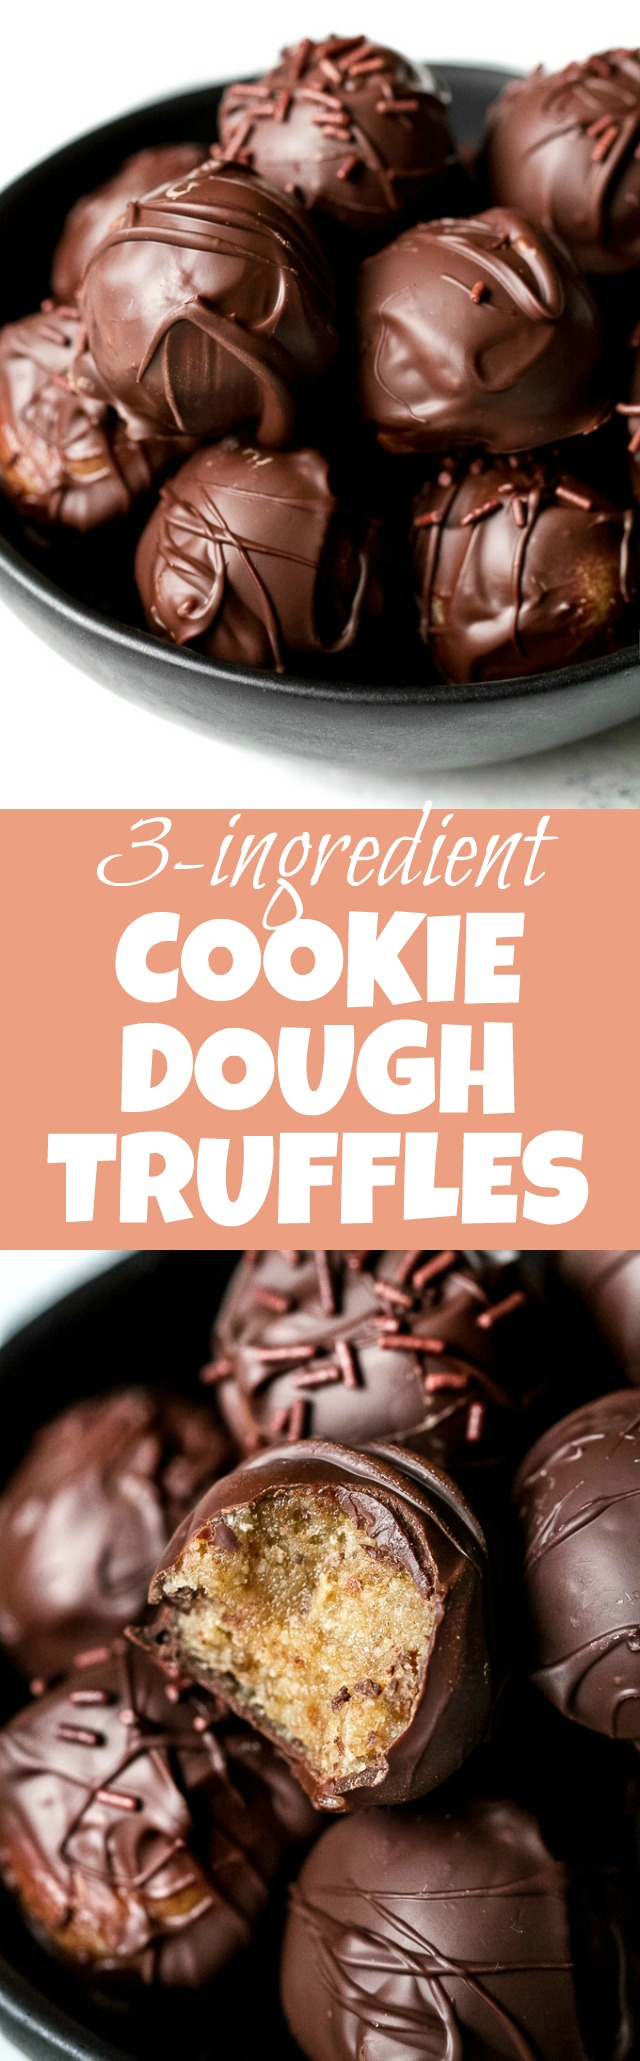 Melt-in-your-mouth 3 ingredient cookie dough truffles that taste and feel just like a decadent dessert but are made with NO grains, oil, eggs, or refined sugars. They're gluten-free, vegan, and a healthy and delicious way to satisfy those chocolate cravings!   runningwithspoons.com